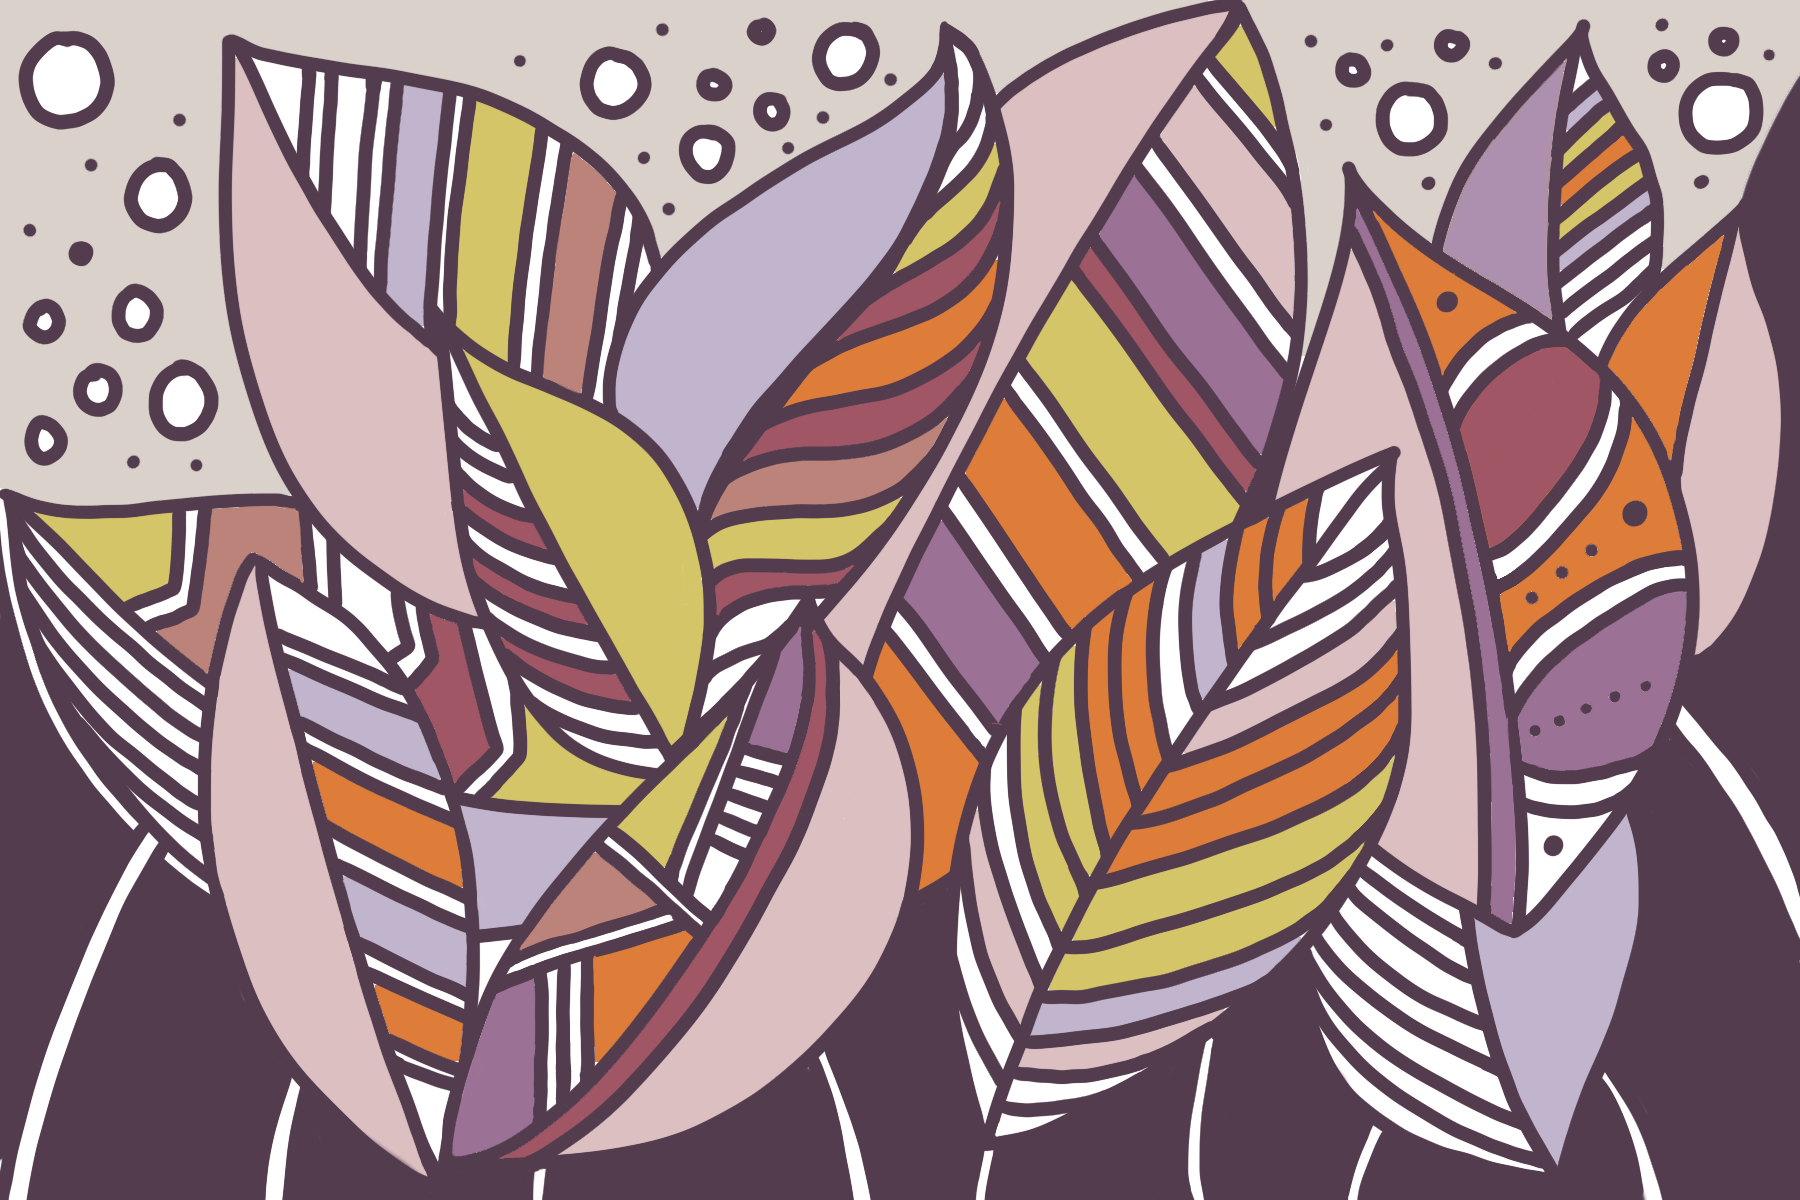 Line_Leaves_04-2018.png